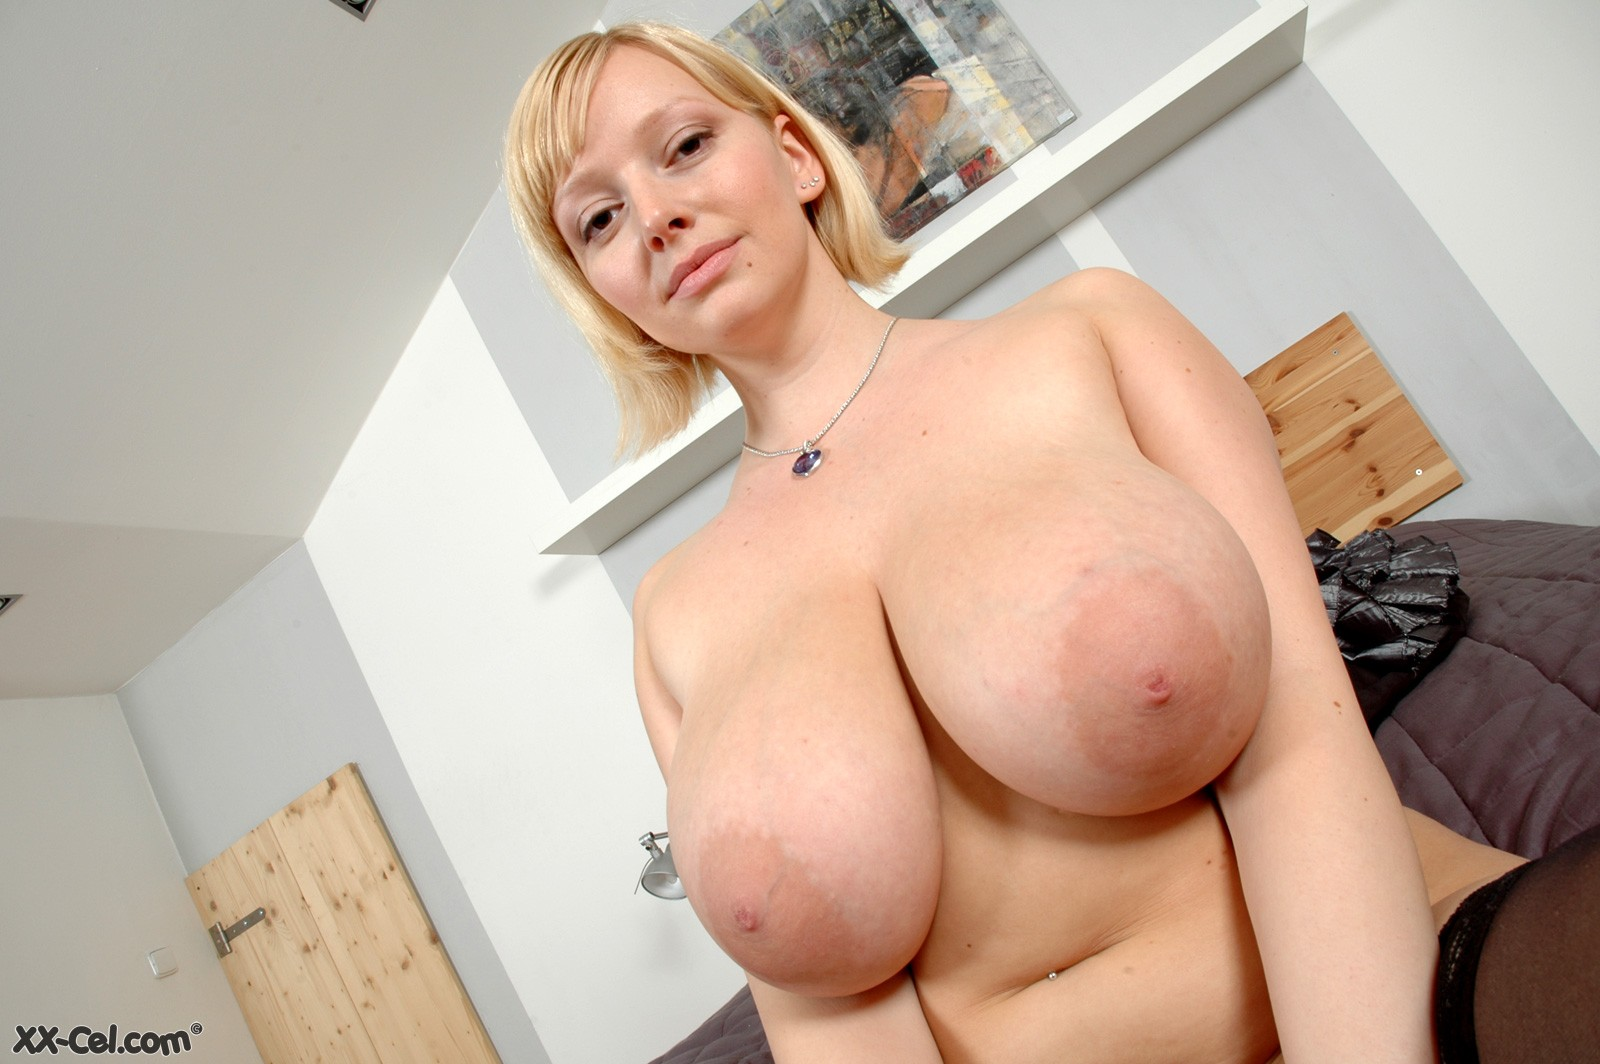 Big natural tits and nipples